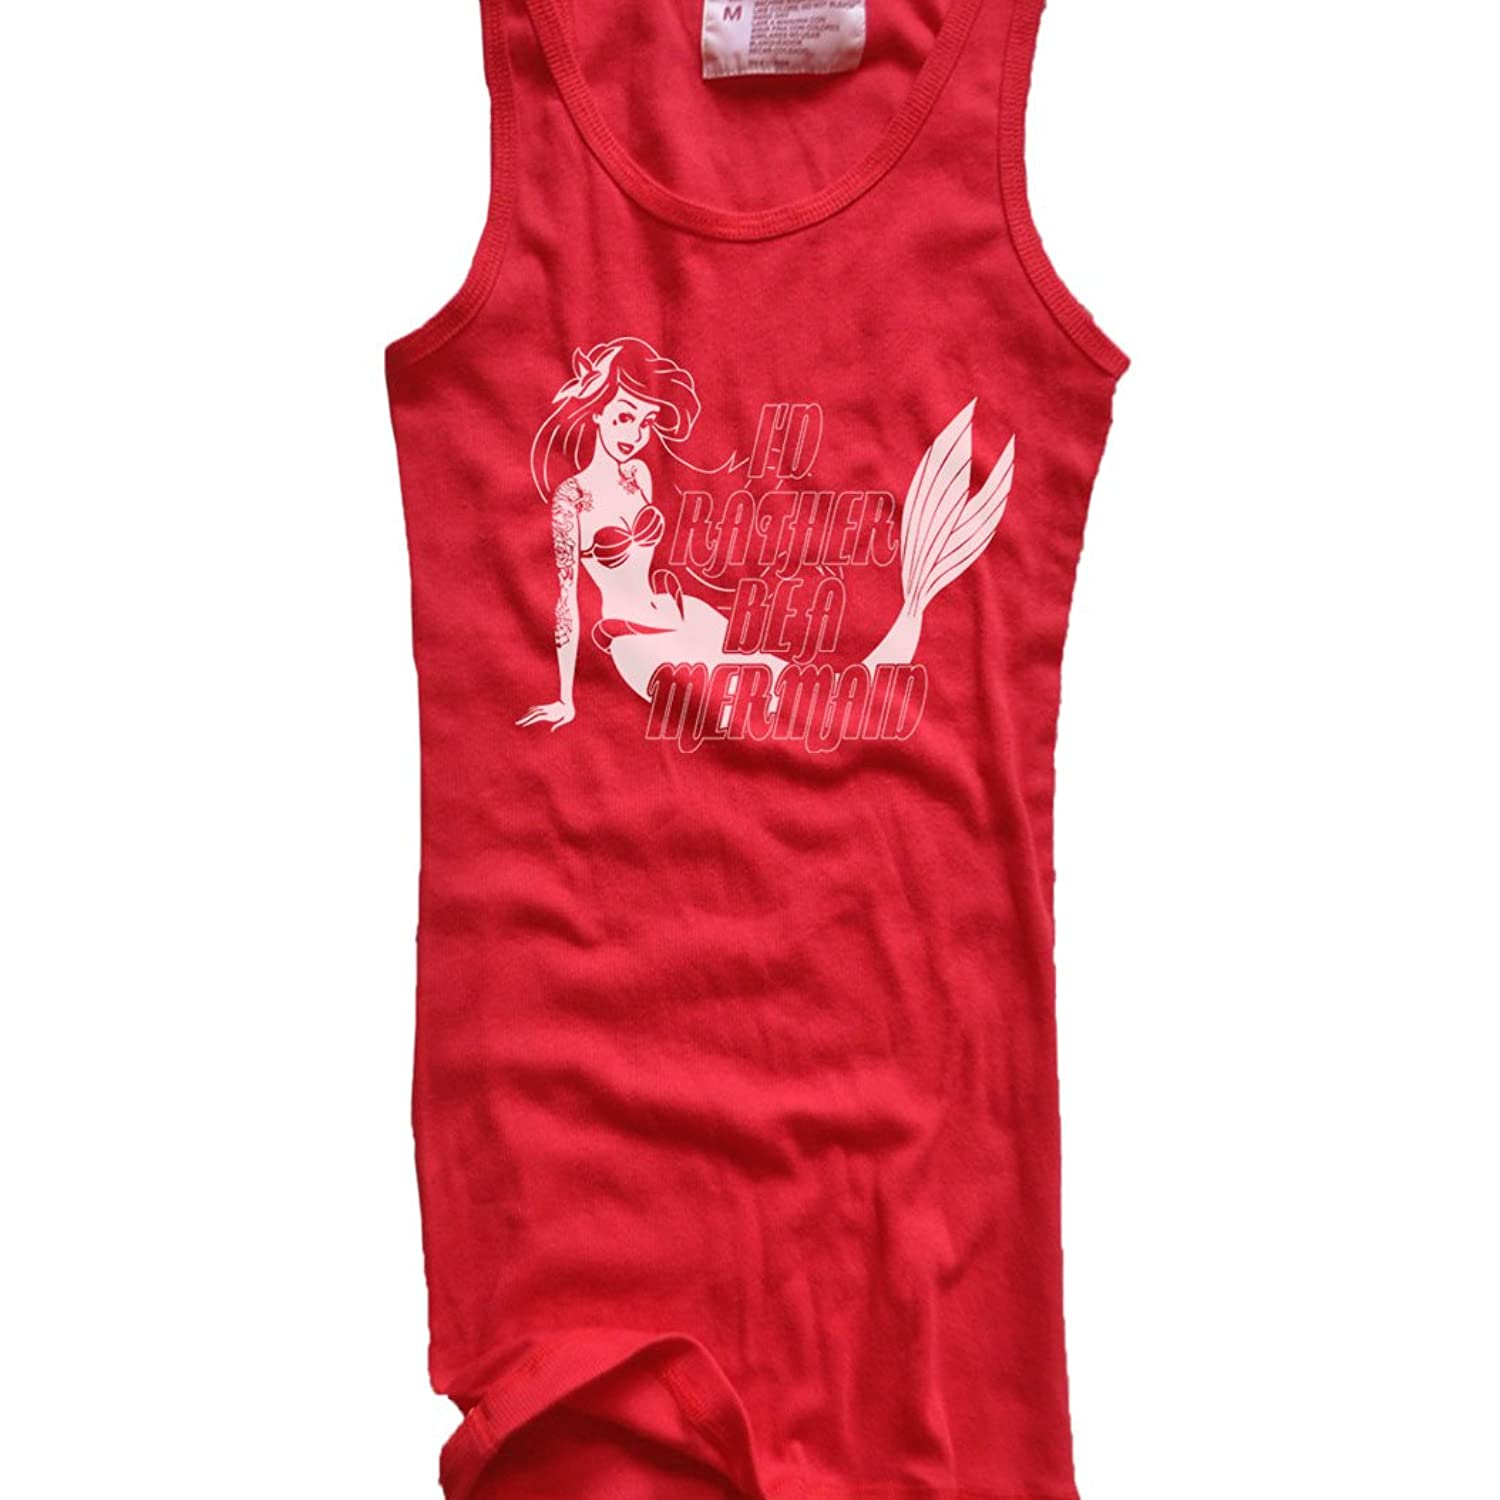 New Womens Frosty Tees I'D Rather Be A Mermain Goth Ariel Punk Ribbed Tank Top